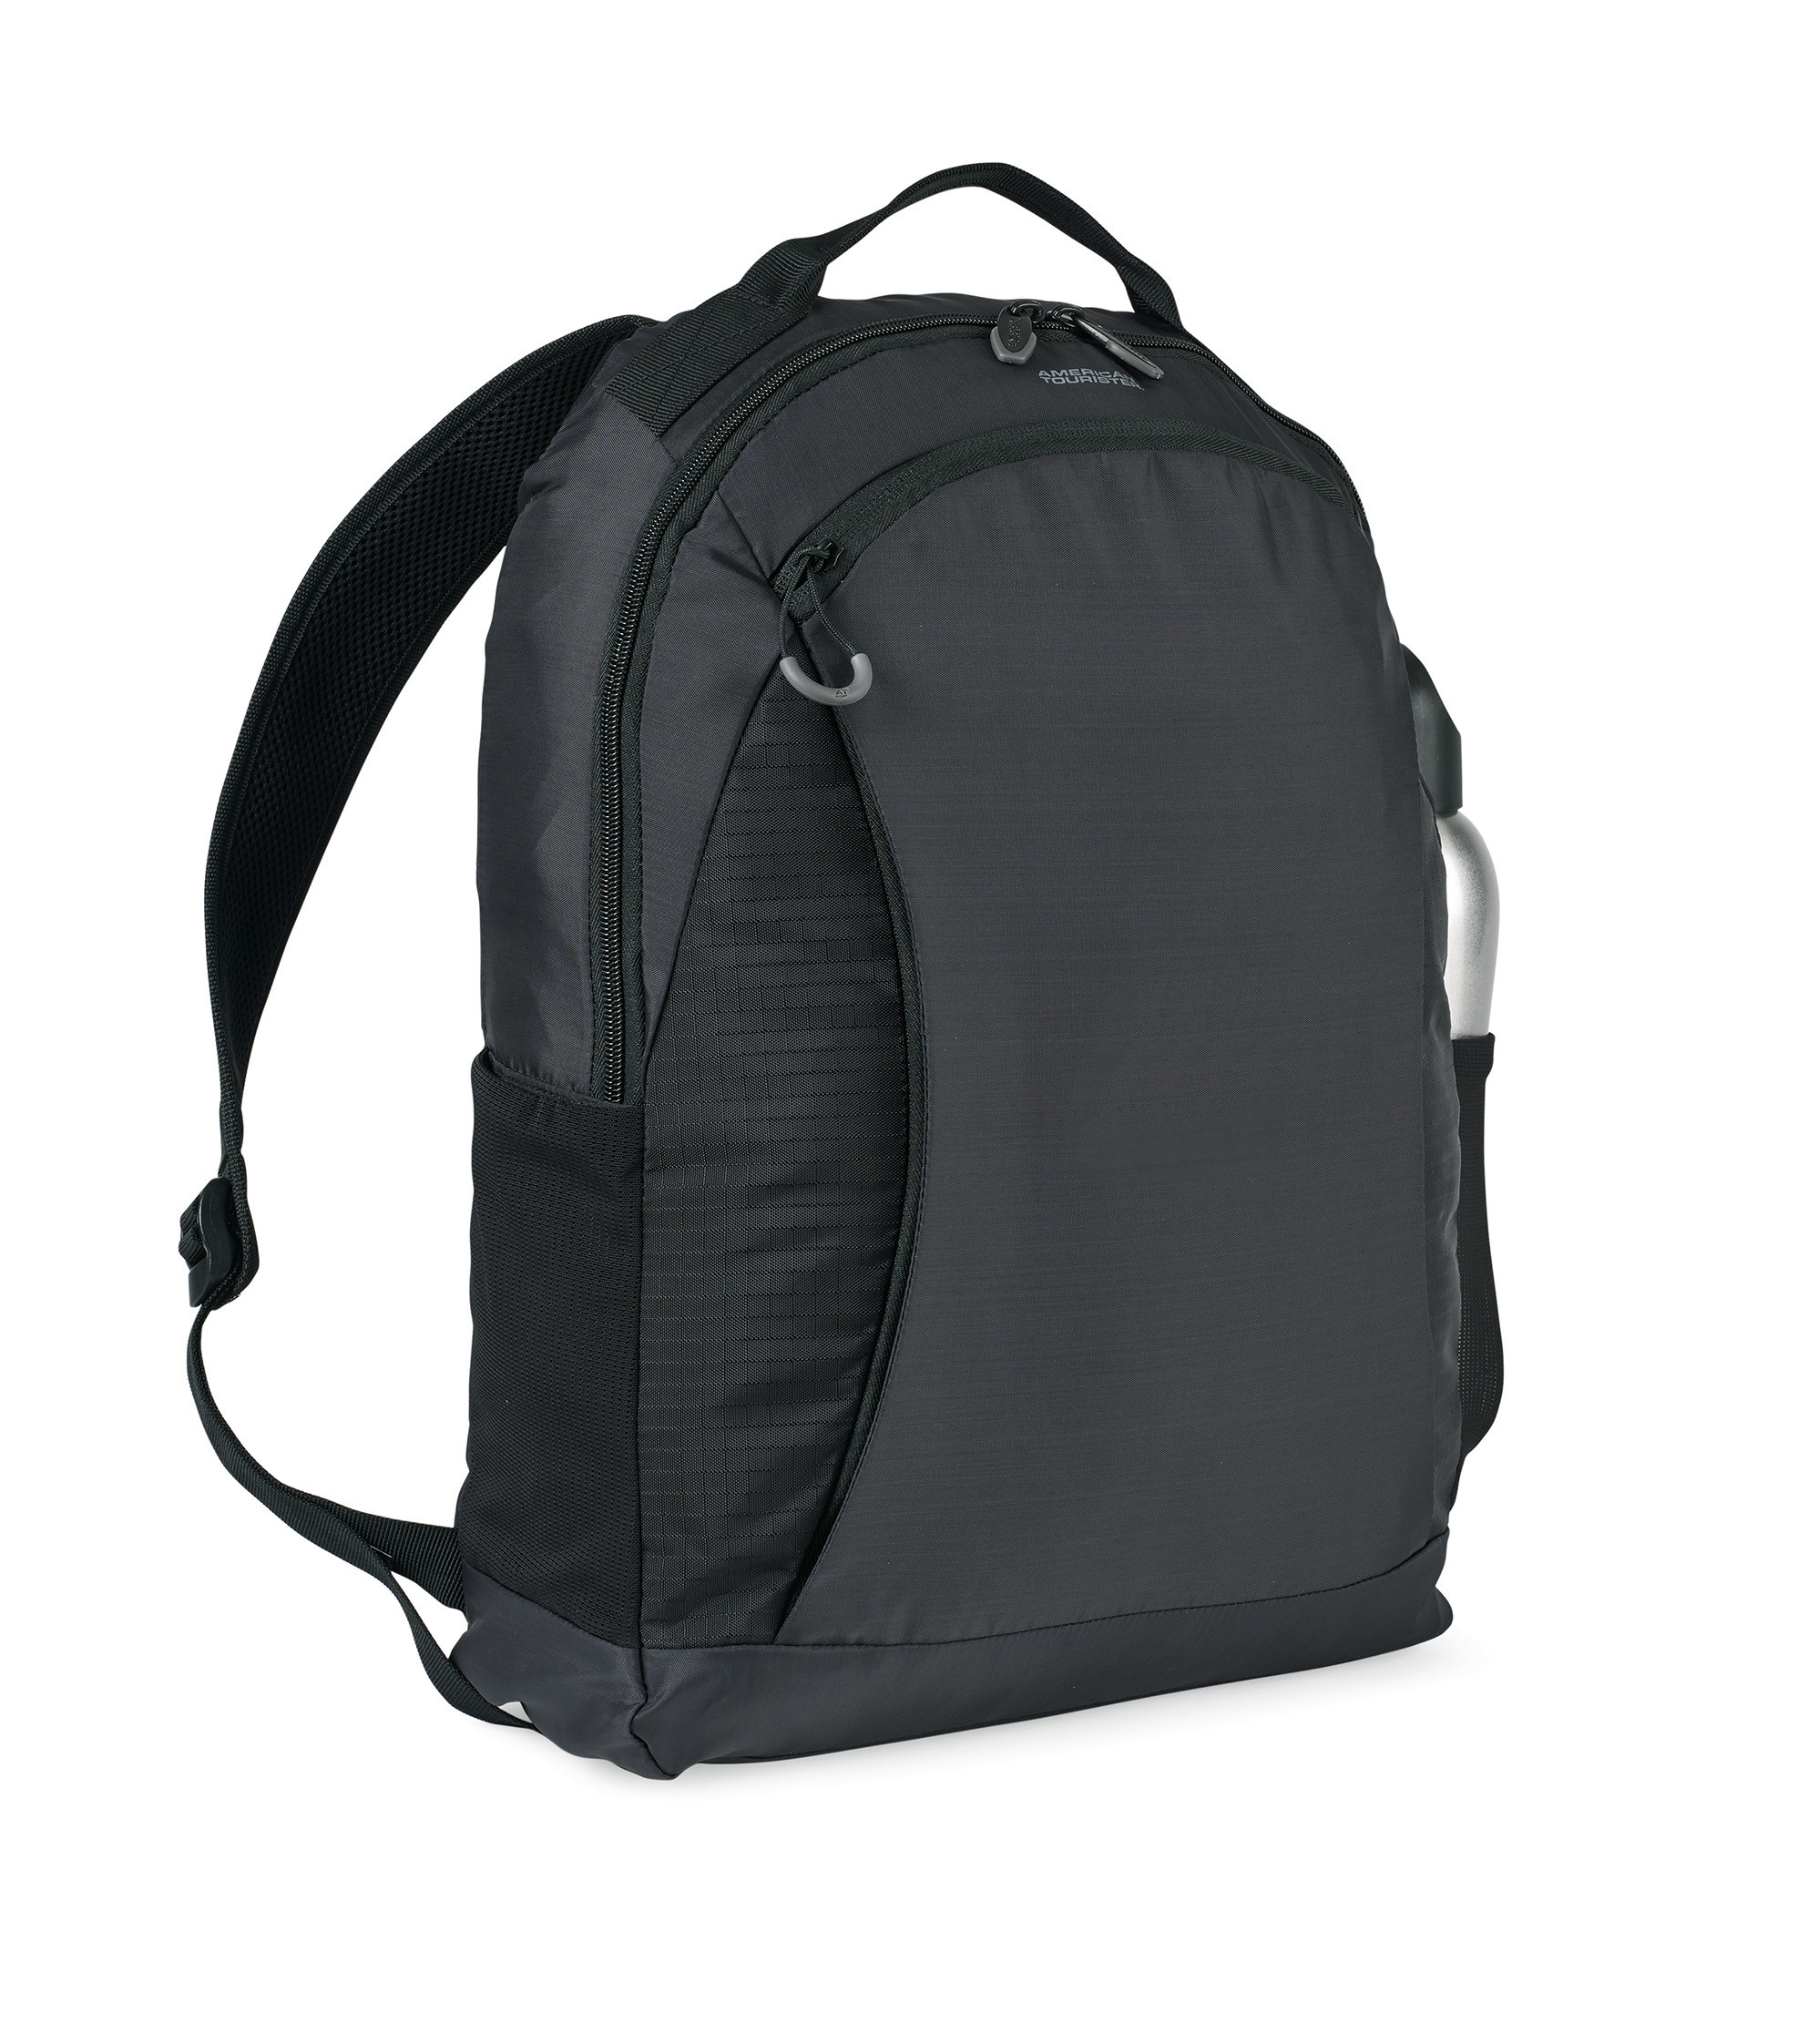 American Tourister 96036 - Voyager Packable Backpack